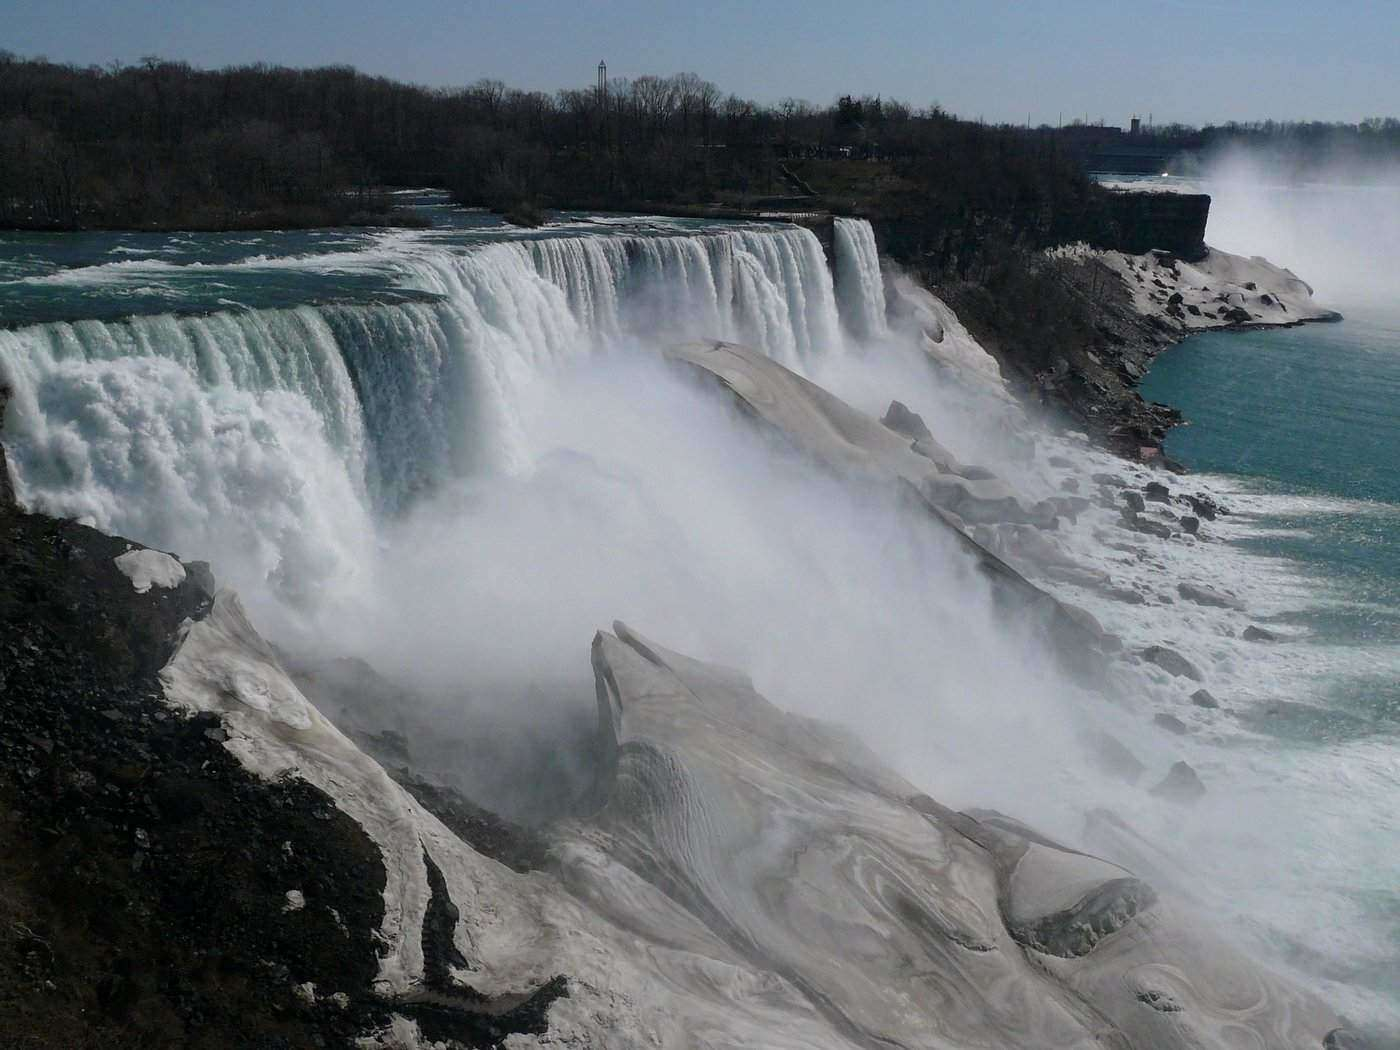 niagara falls state park - 11 best state parks in the united states